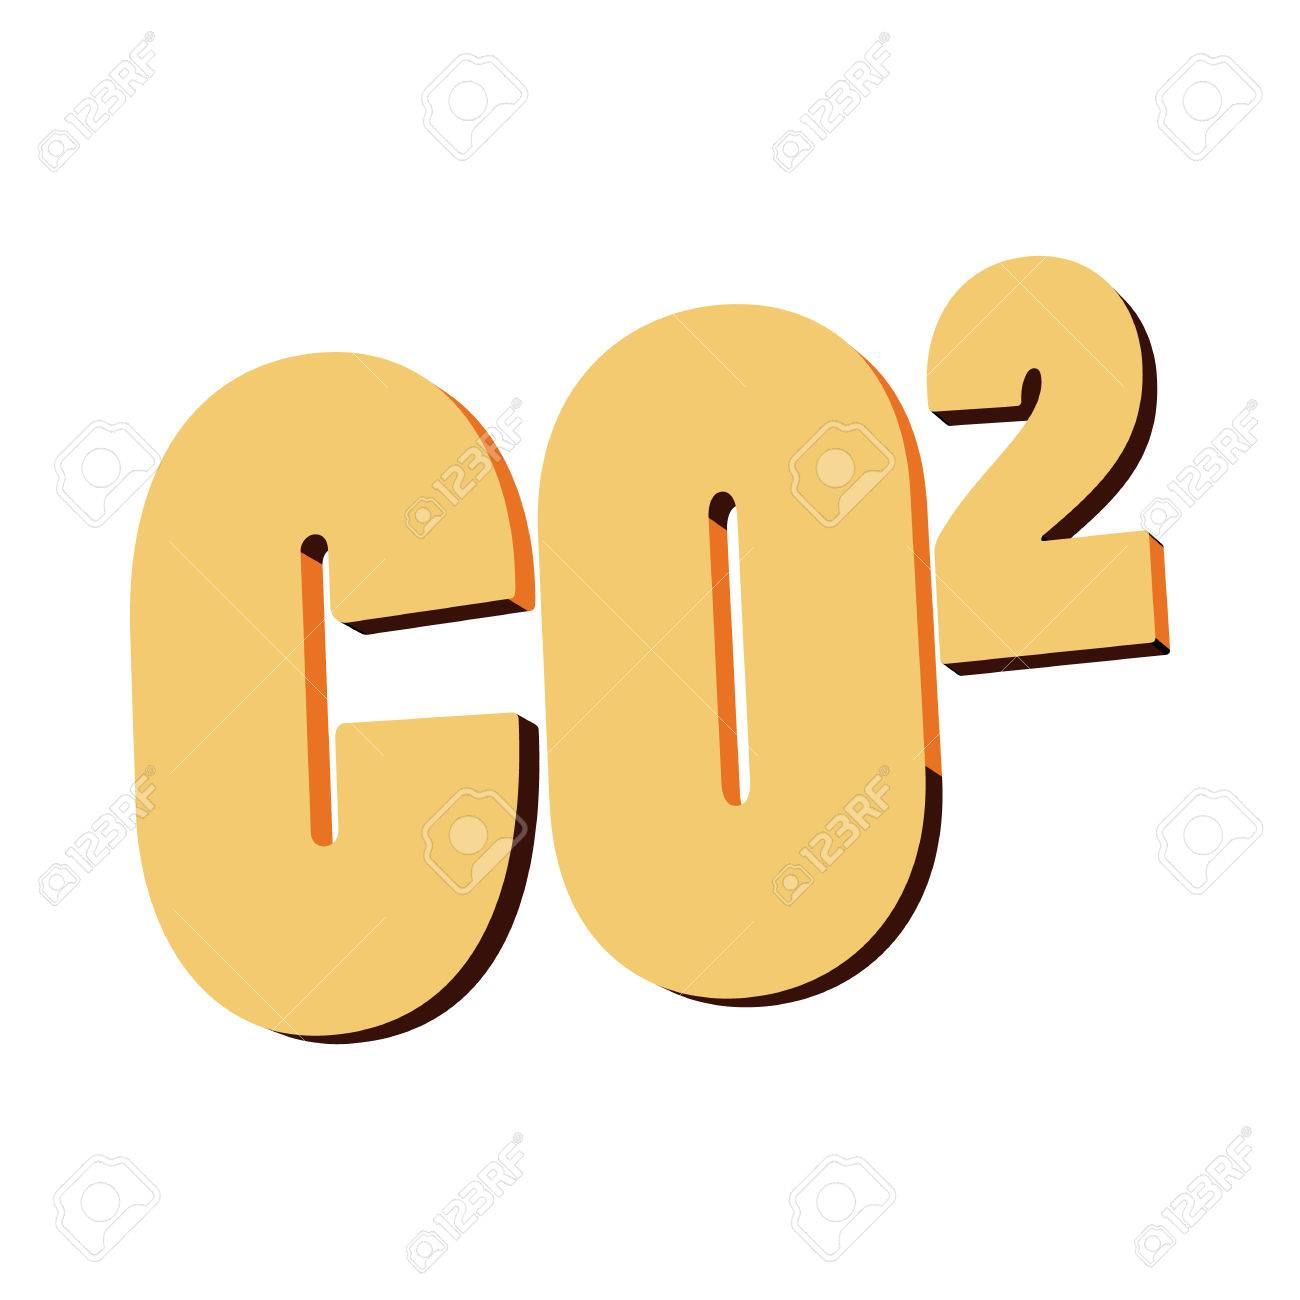 Carbon dioxide co2 icon in cartoon style on a white background carbon dioxide co2 icon in cartoon style on a white background stock vector 57979973 buycottarizona Images